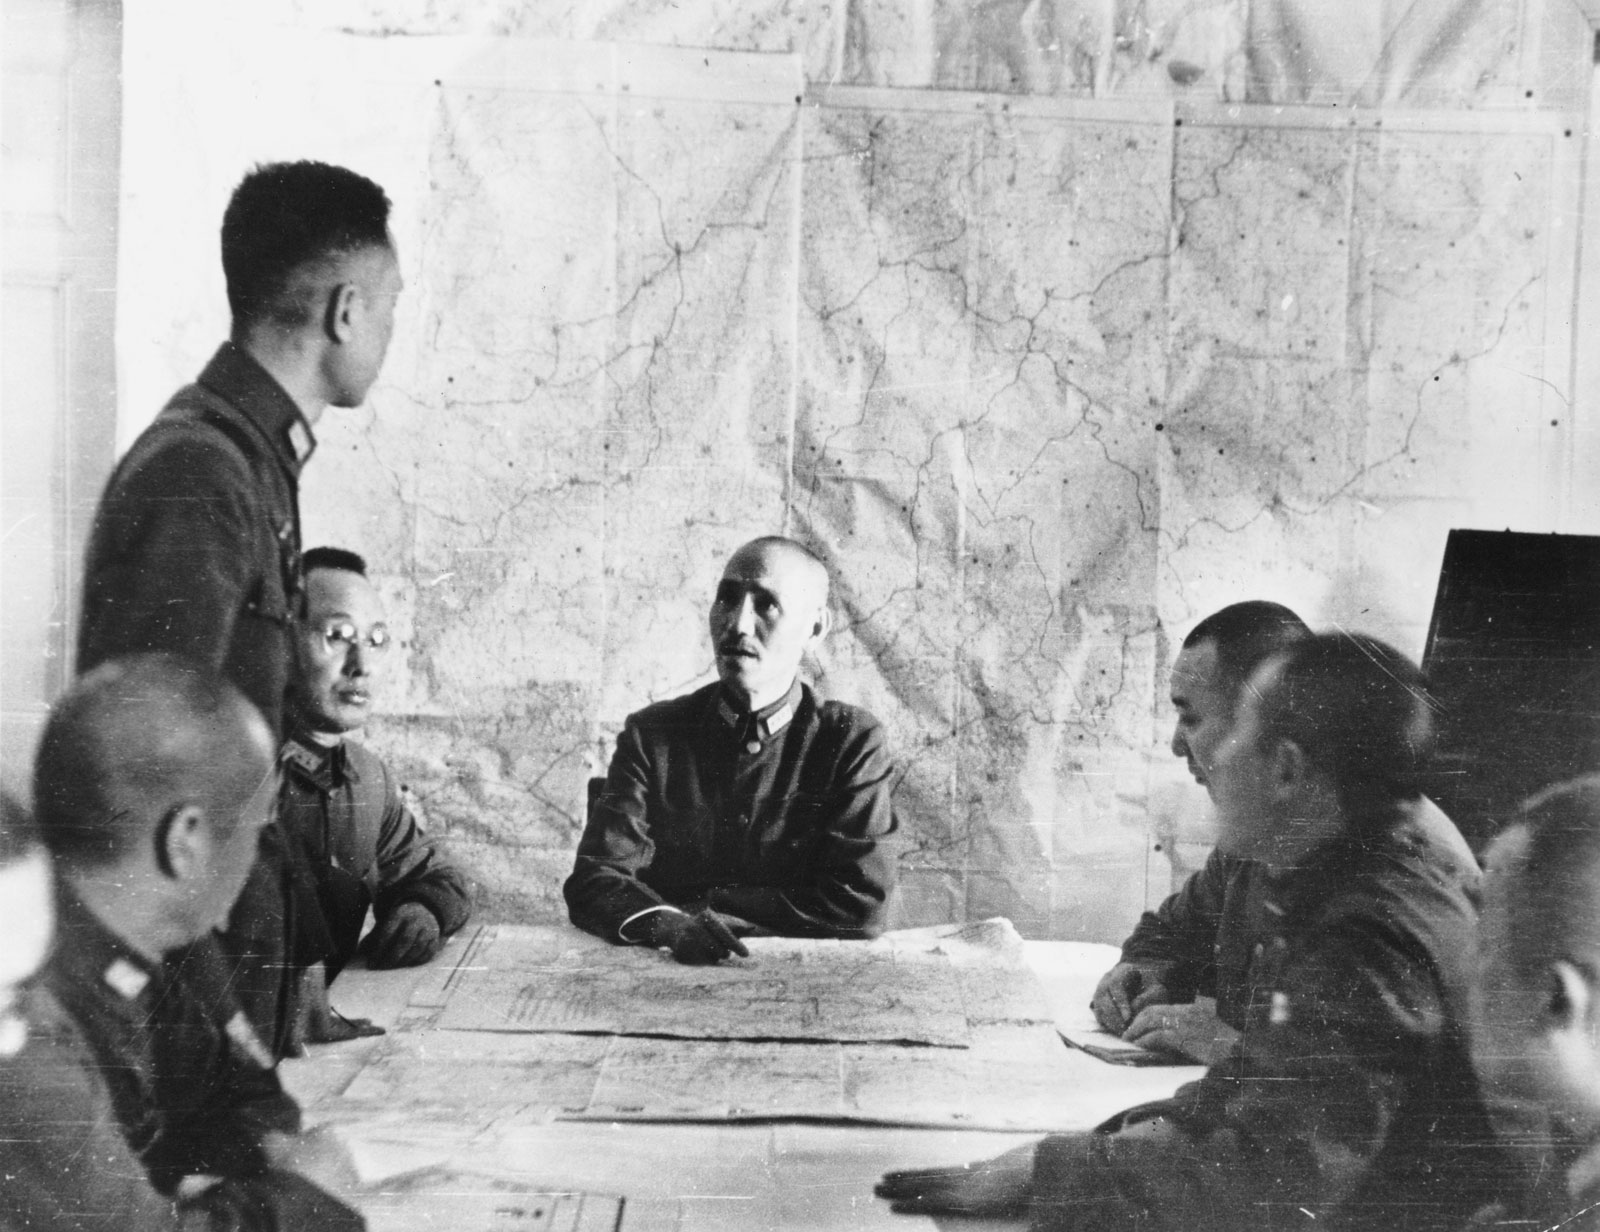 Chiang Kai-shek meeting with his staff during the Sino-Japanese War. (Encyclopædia Britannica Online)